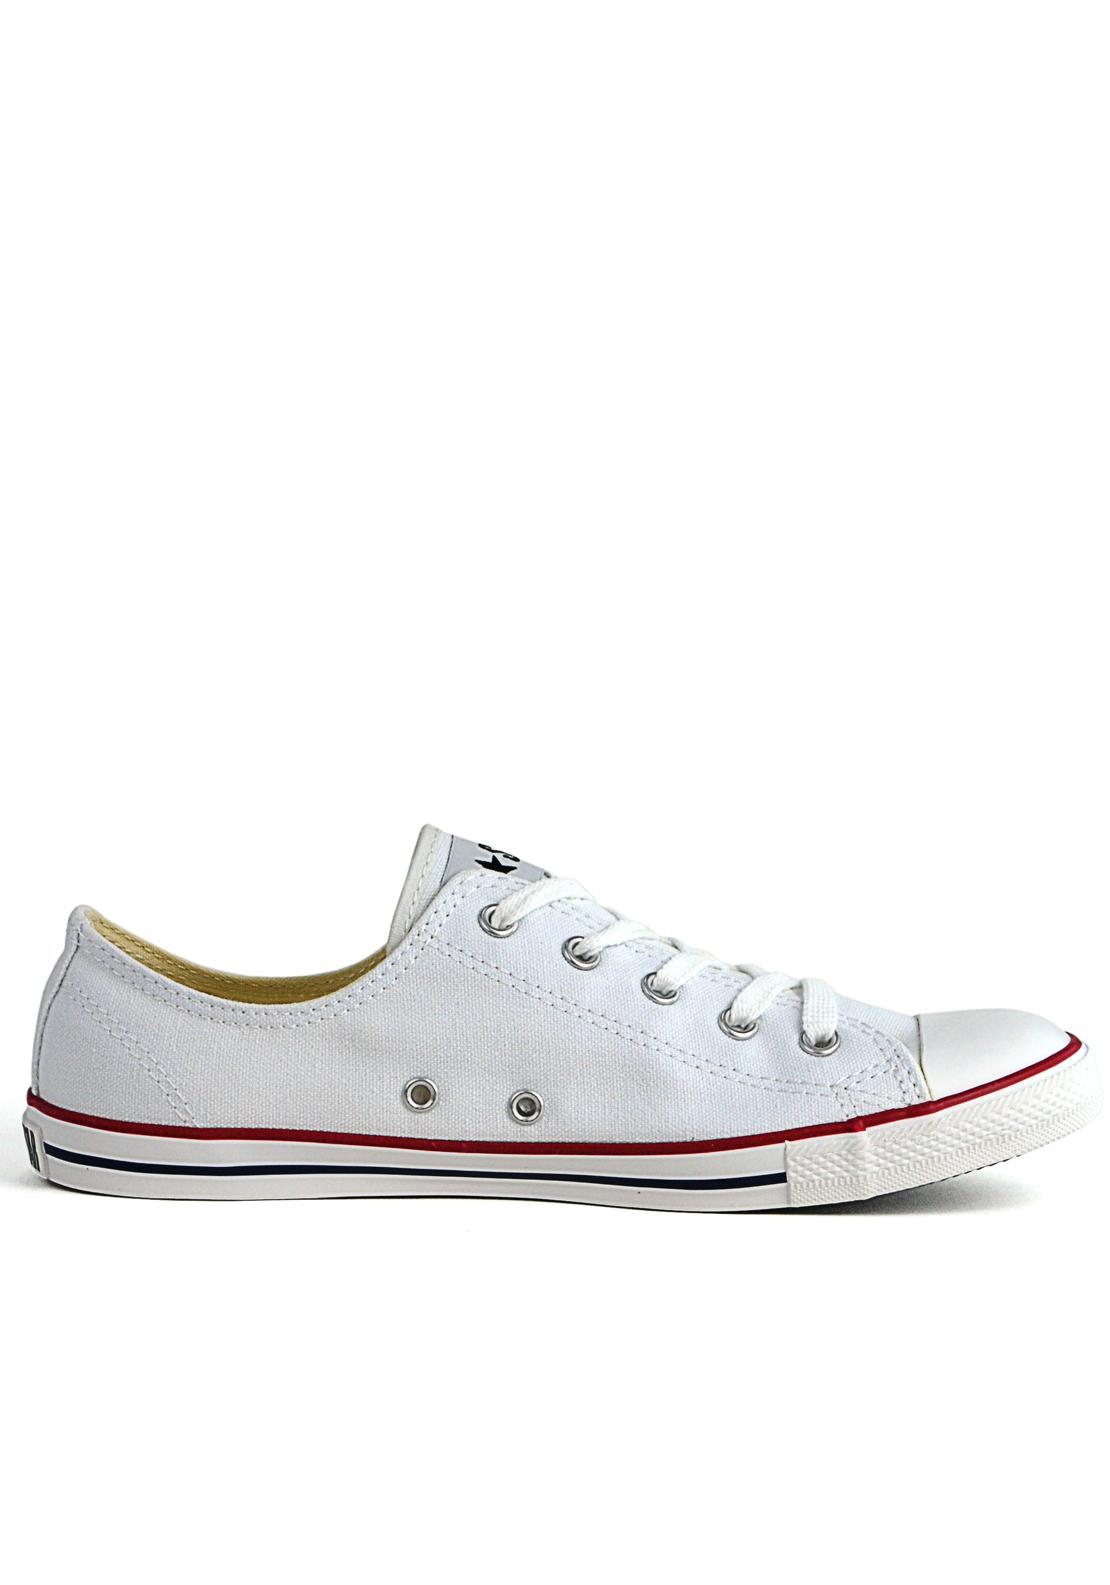 Converse Unisex Chuck Taylor Dainty Ox Trainers, White